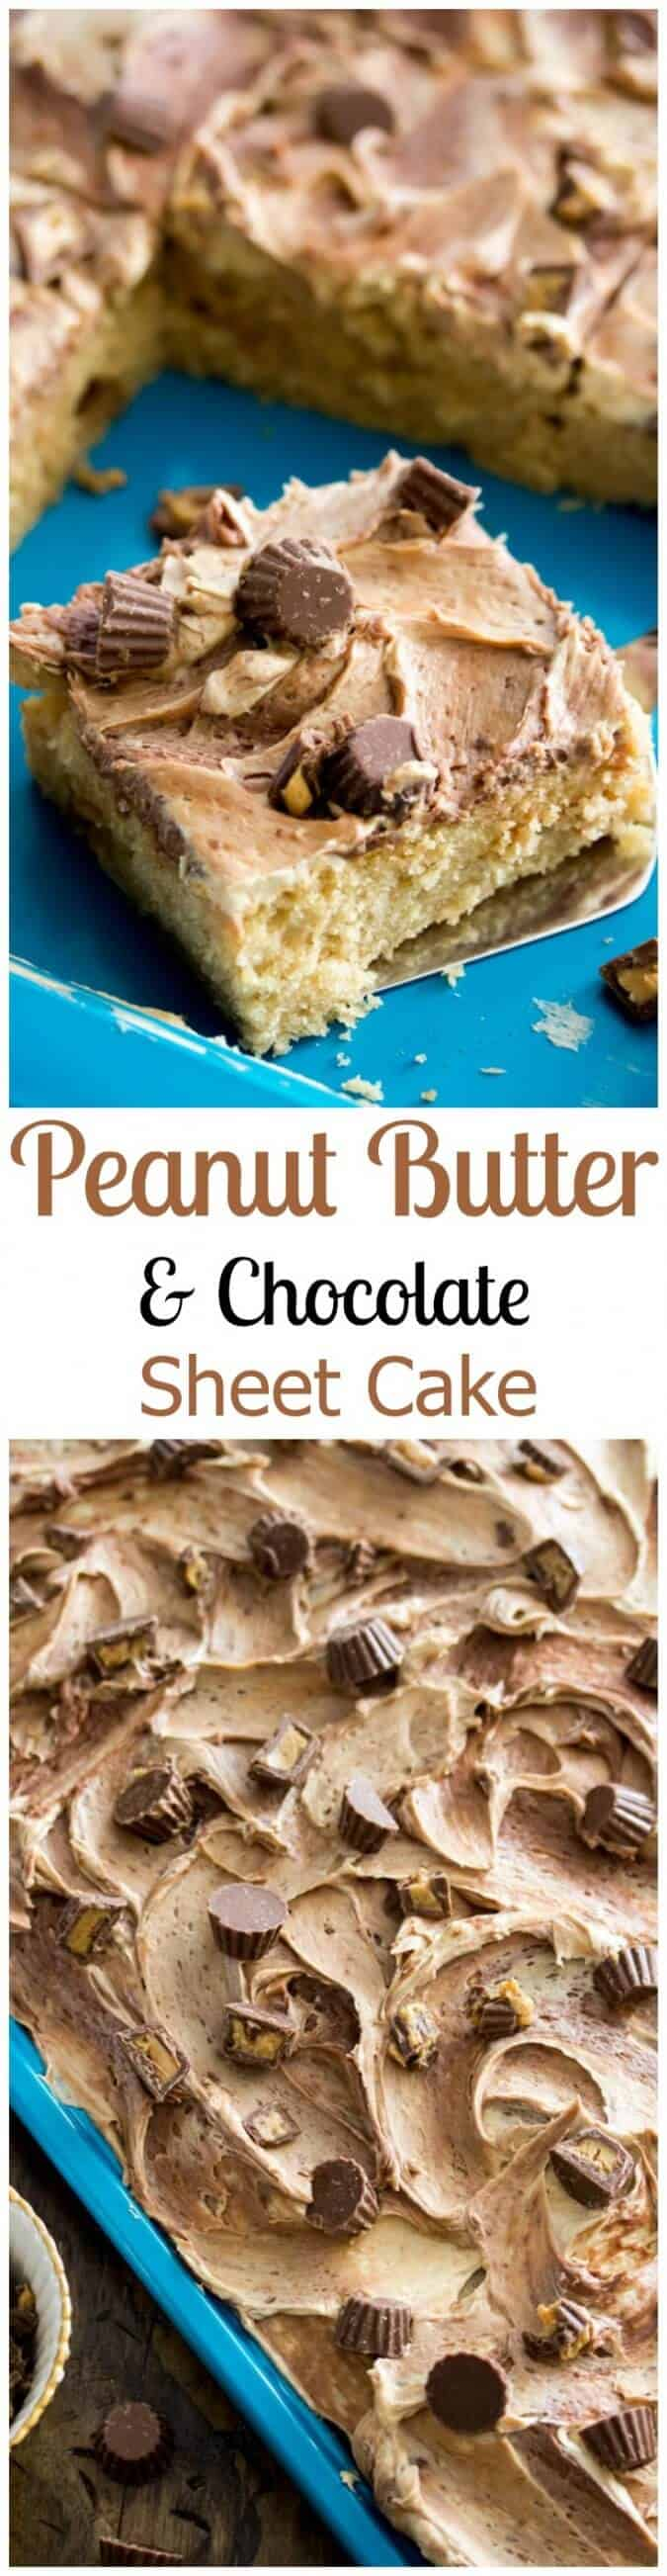 Peanut Butter and Chocolate Sheet Cake